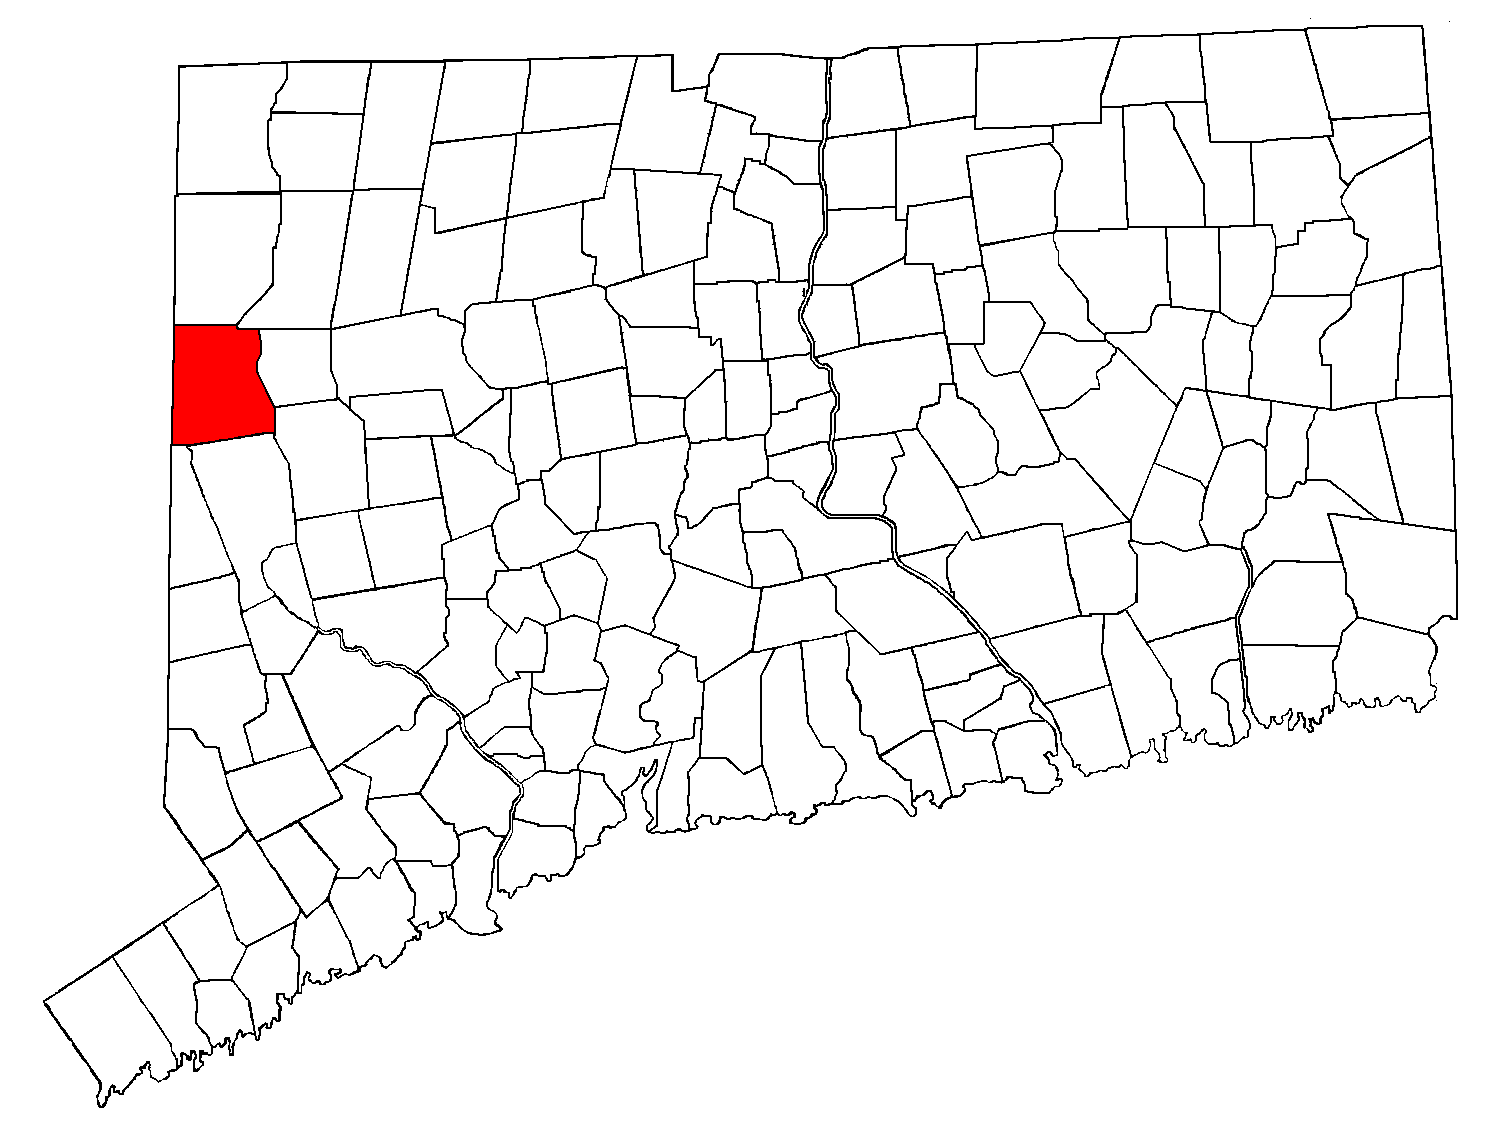 Archivo:Kent Connecticut.png